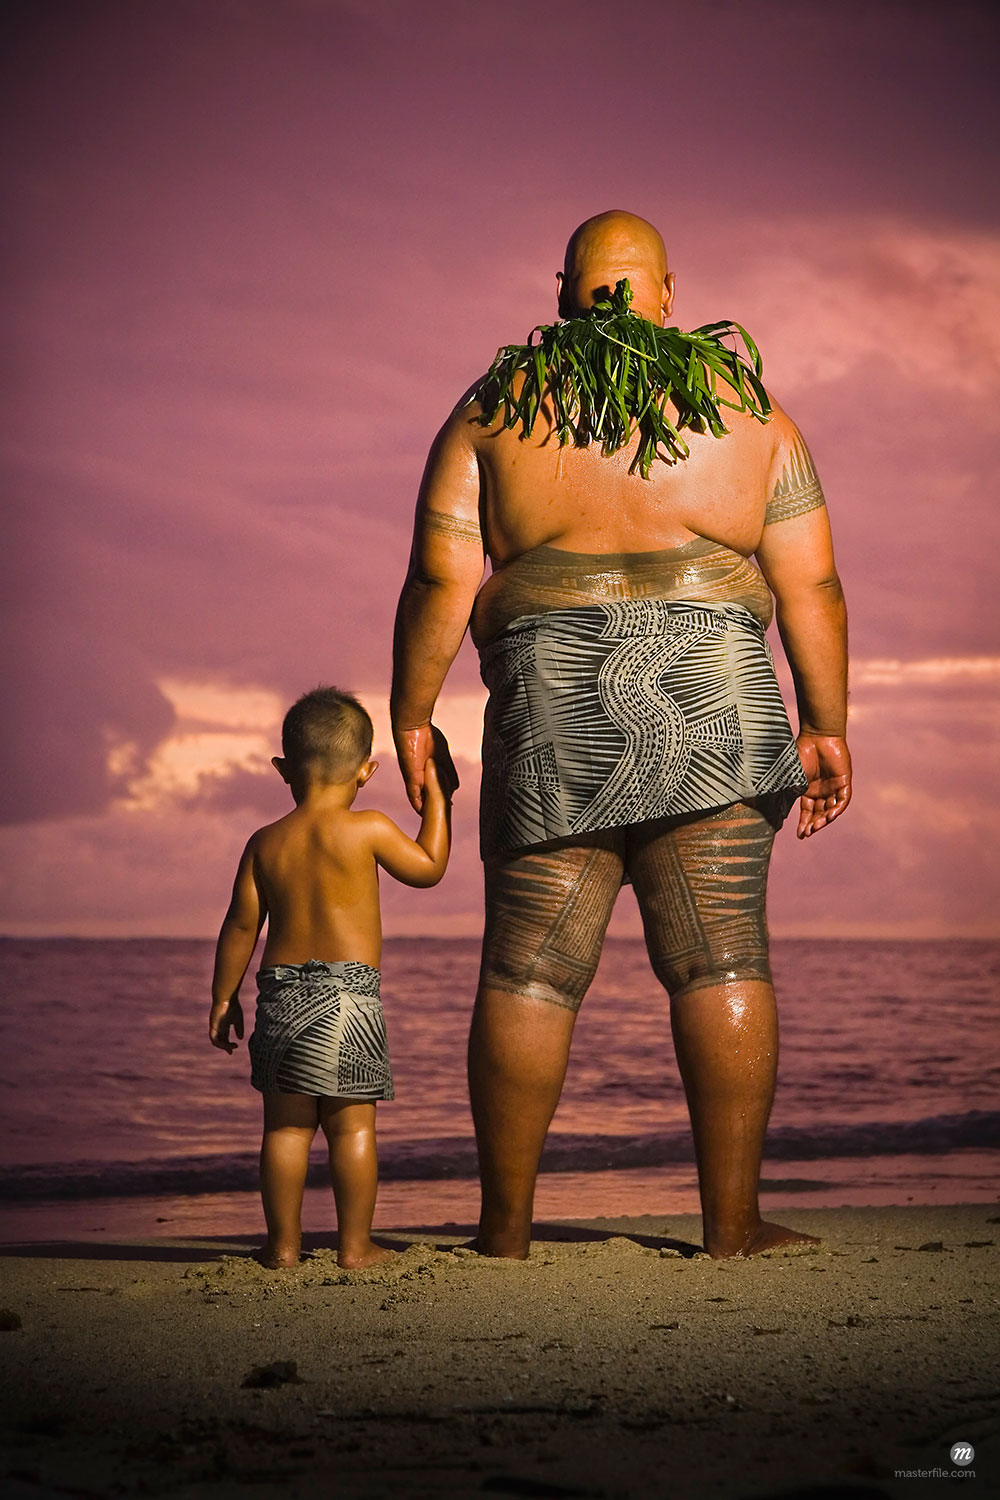 Father and son on beach in Samoa  ©  R. Ian Lloyd / Masterfile